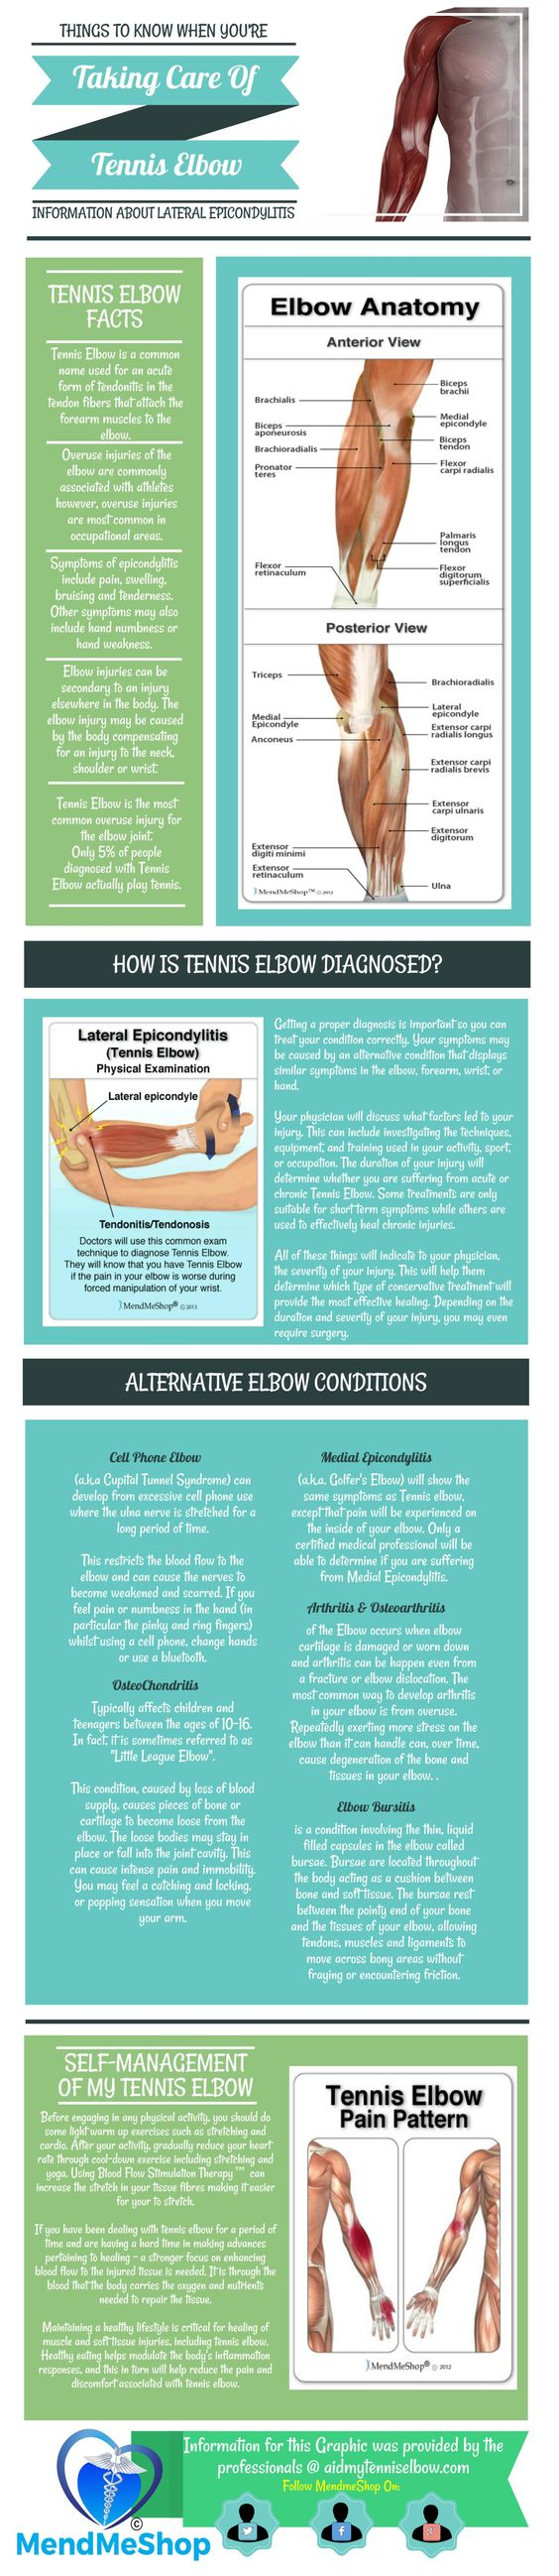 Taking care of Tennis Elbow